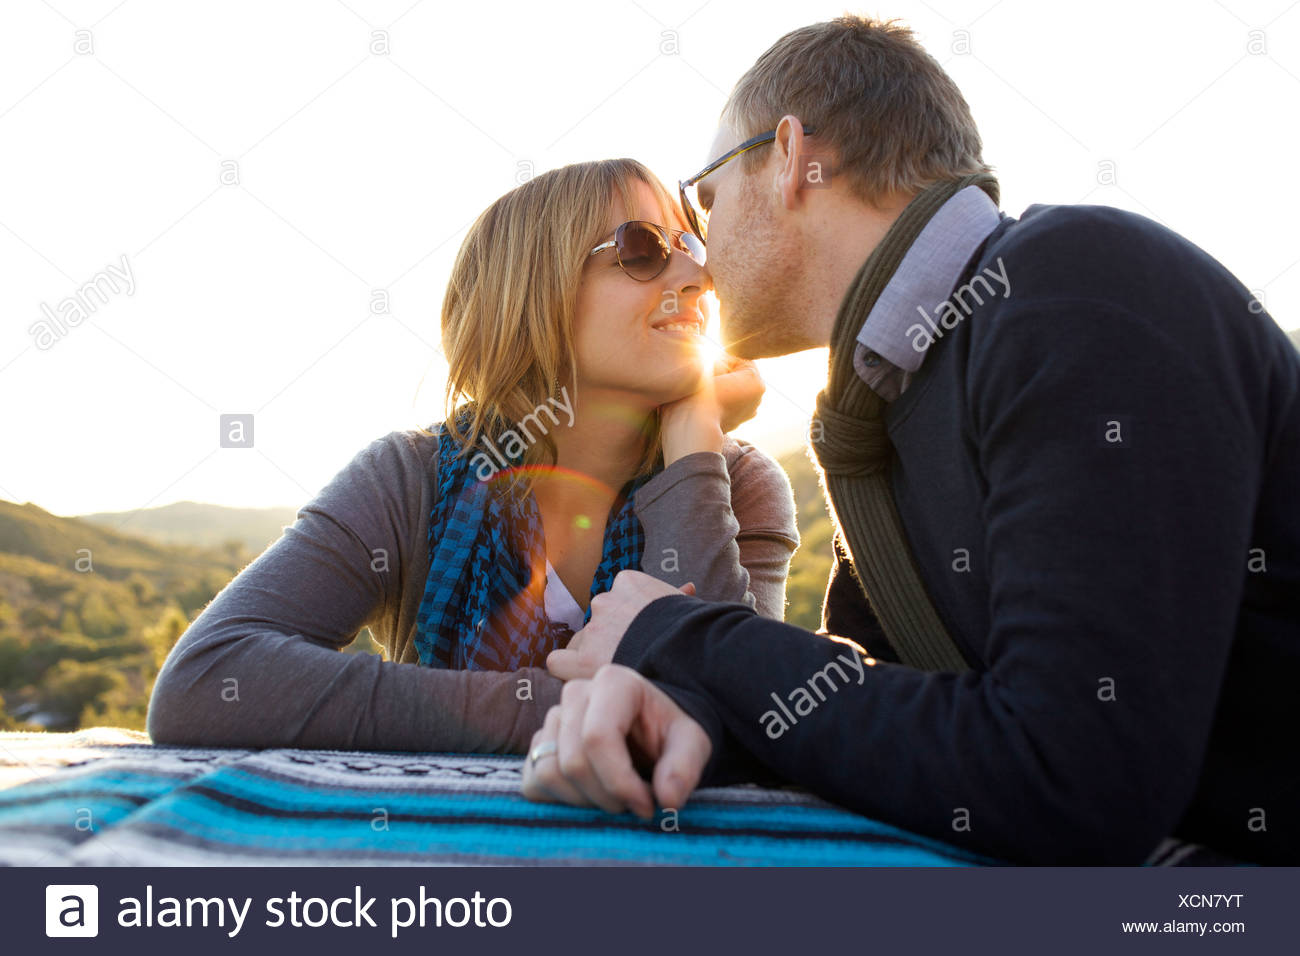 Couple approach each other to kiss on the side of the road. - Stock Image